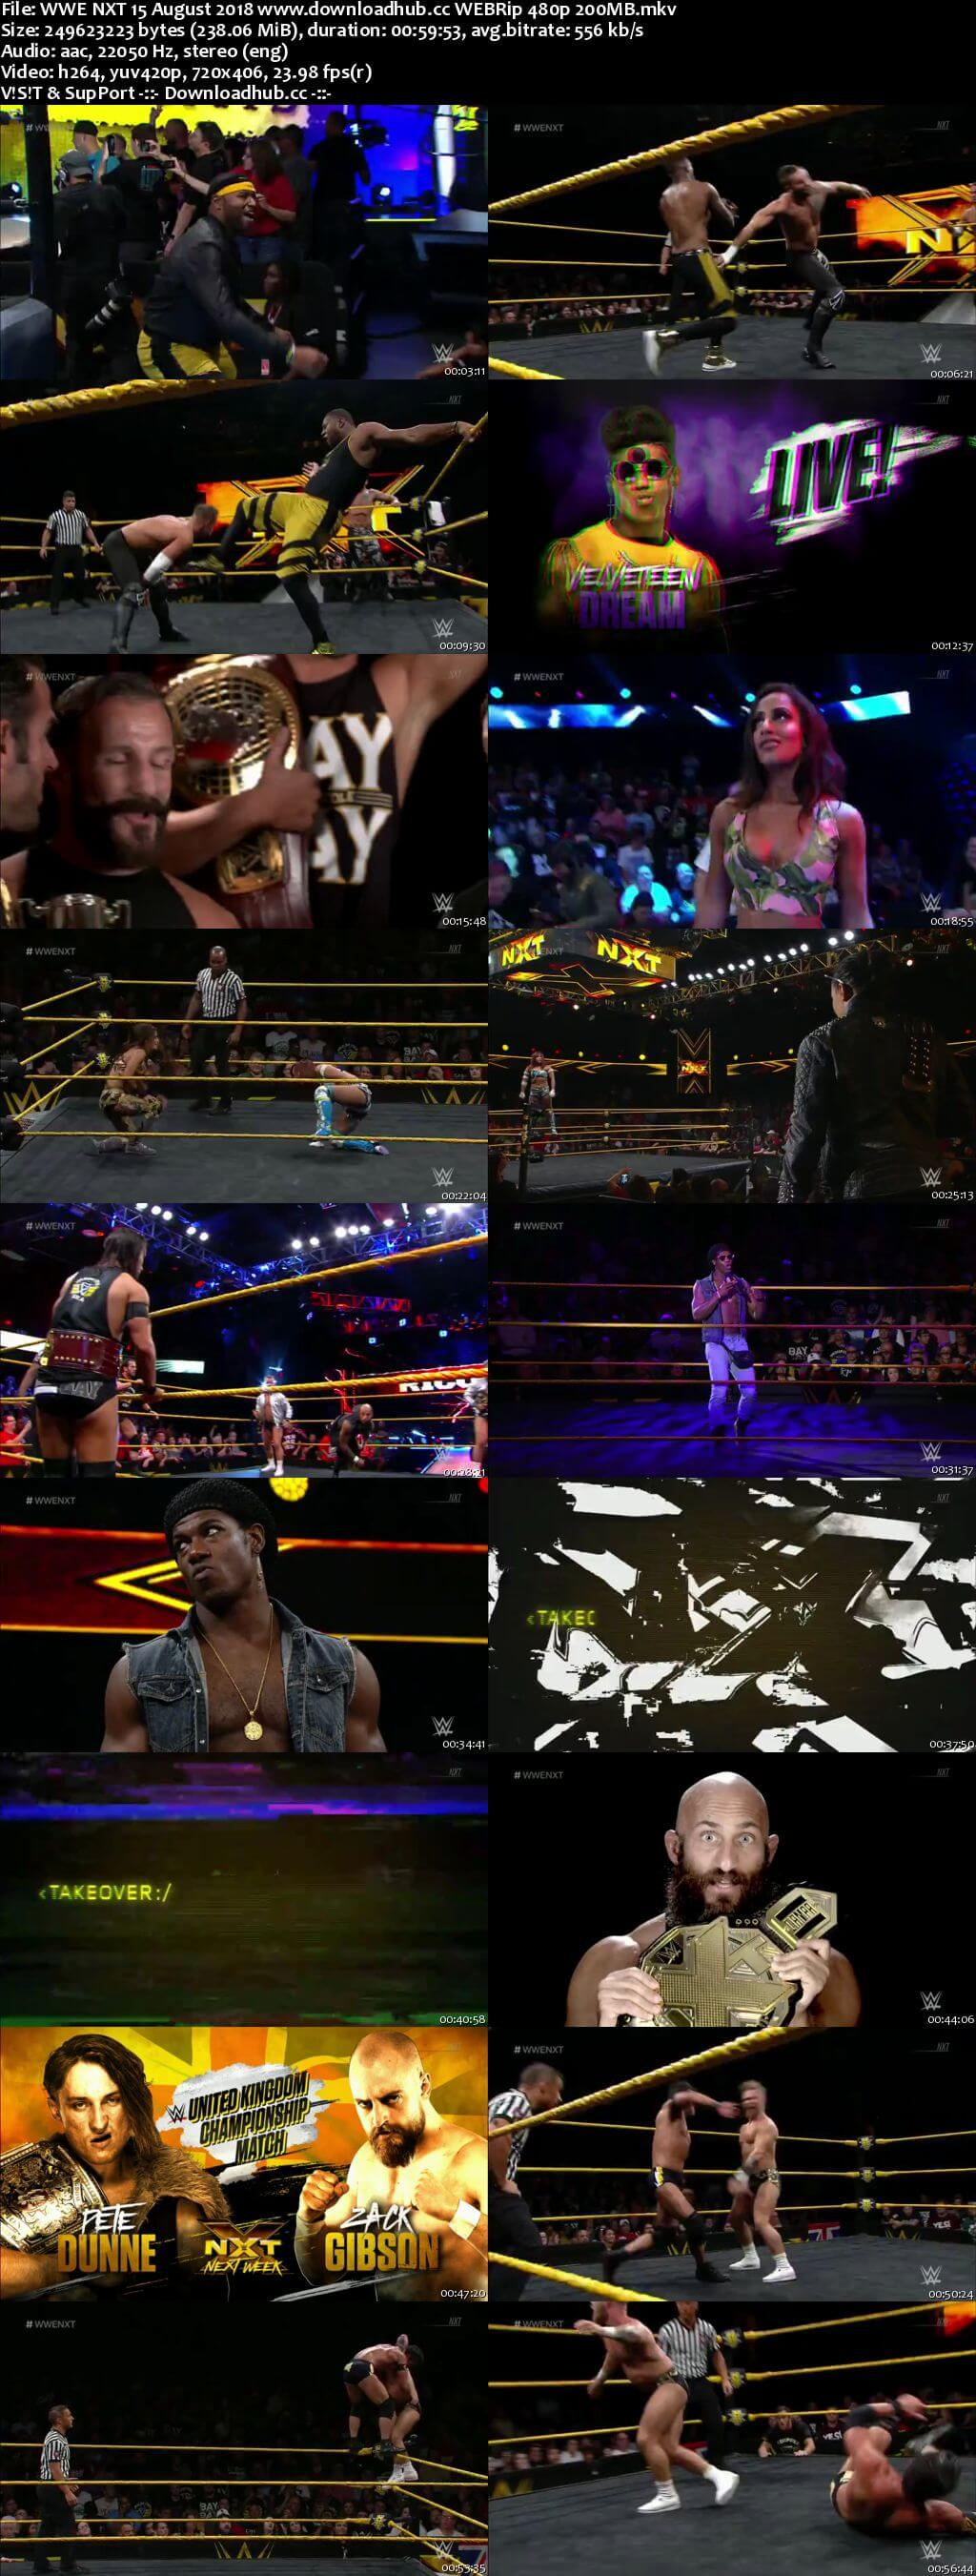 WWE NXT 15 August 2018 480p HDTV Download